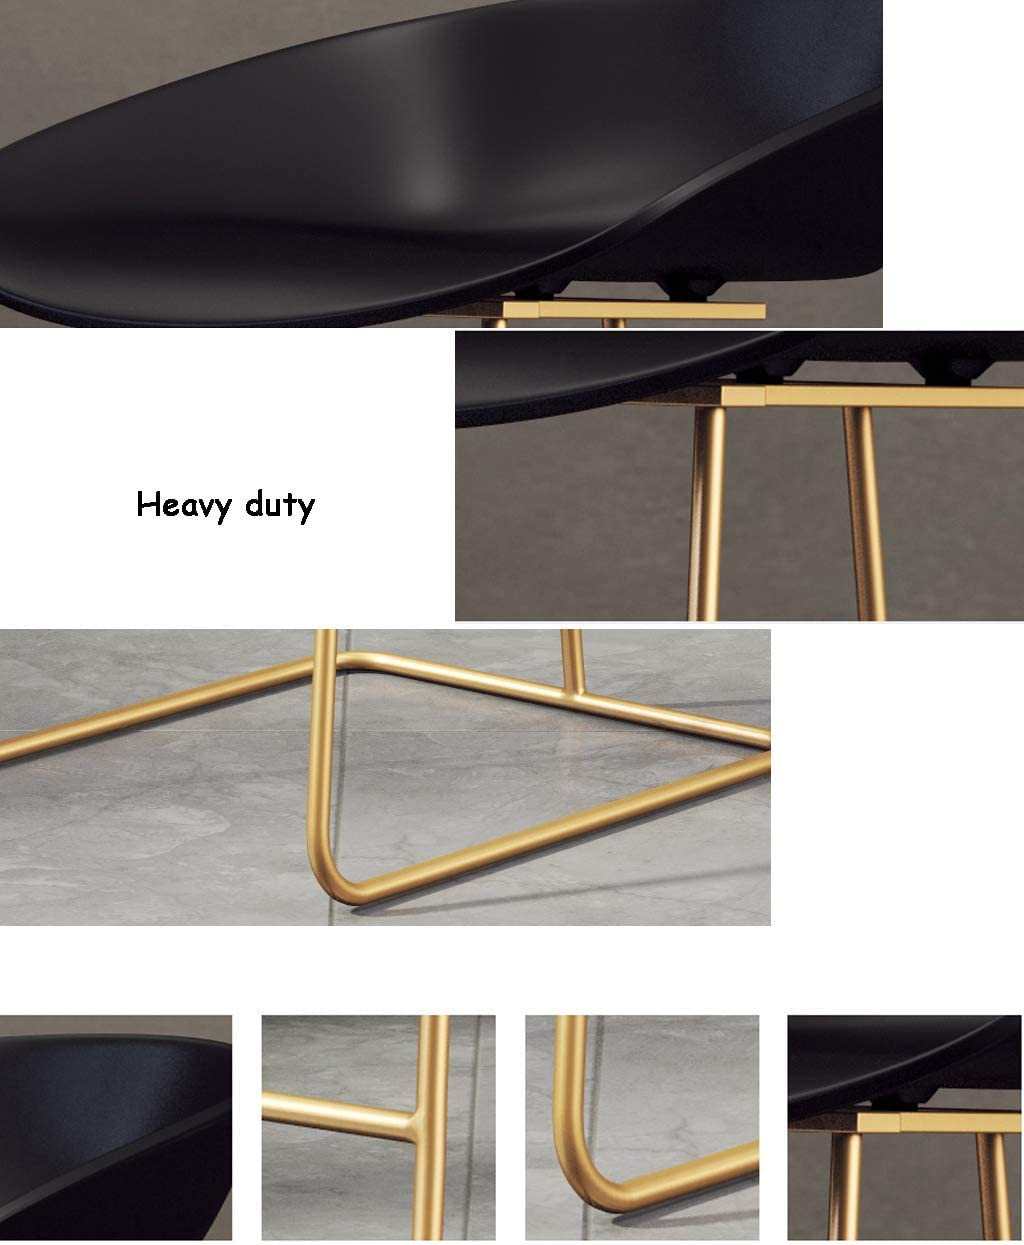 QSHG Chairs Modern Stylish Design Pyramid Style Shape World Colourful Stable Frame Rubber Ring Metal Legs Form Gift (Color : Black) Black